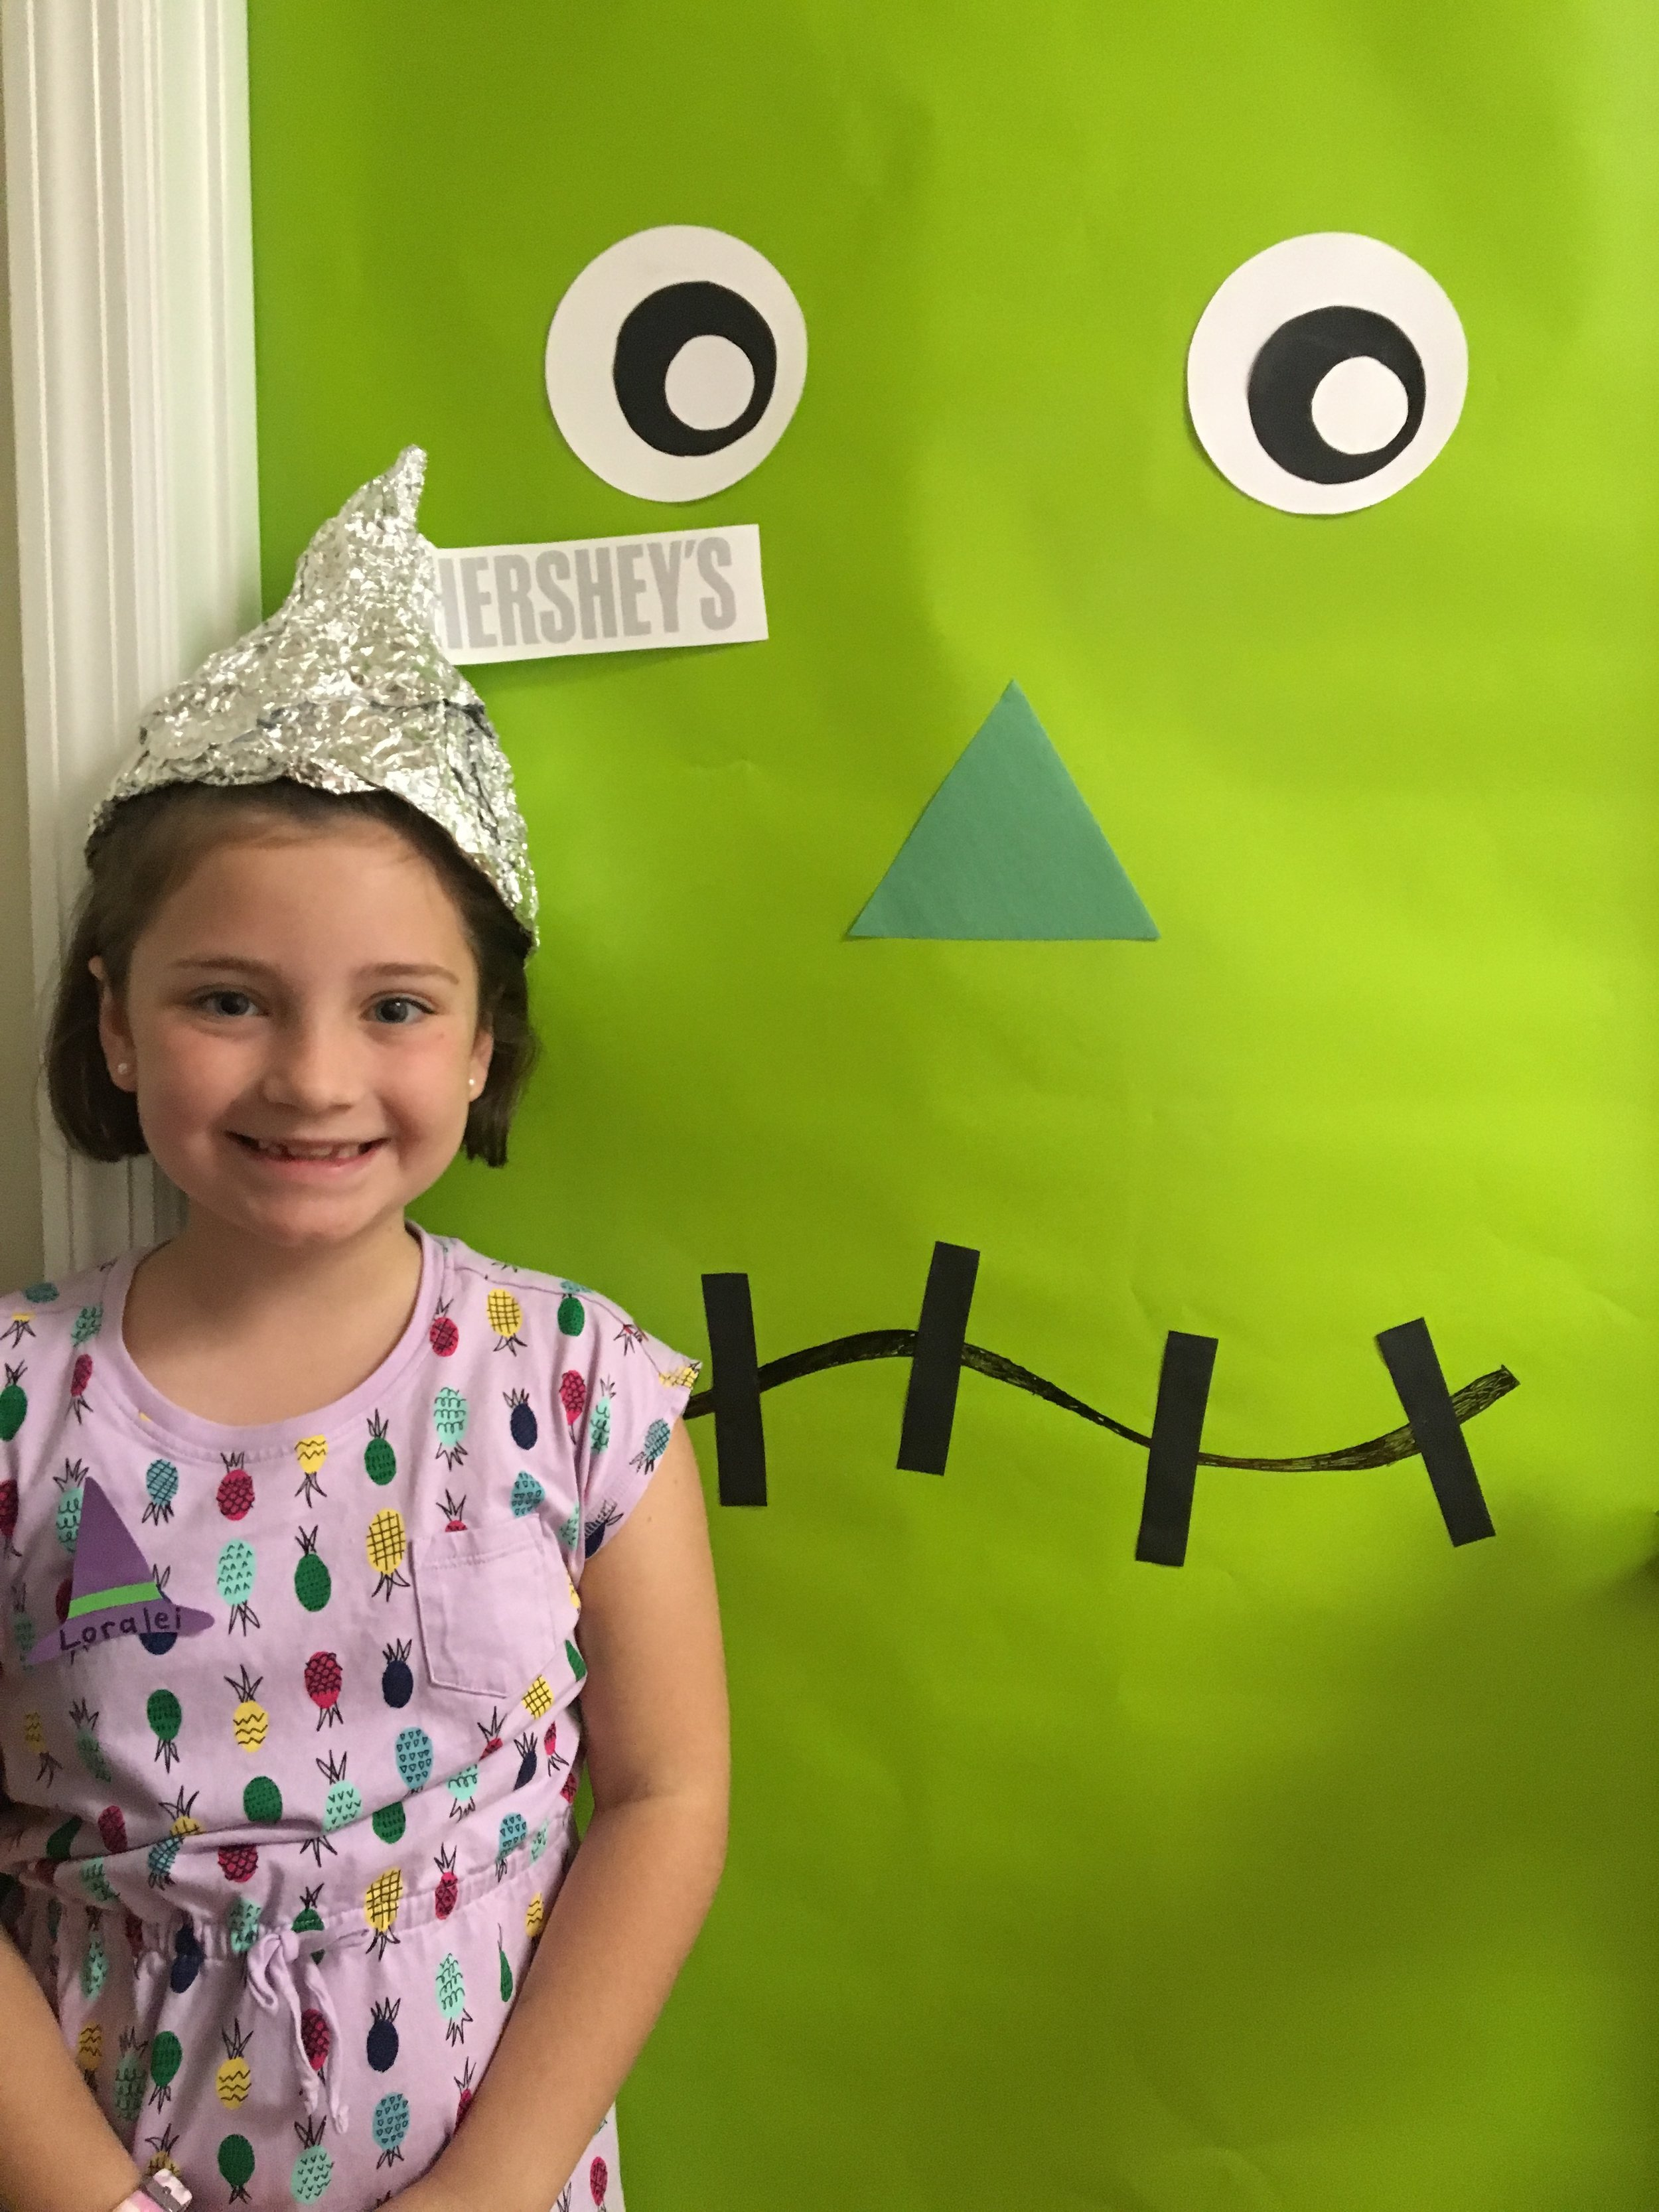 She makes that Hershey Kiss hat look even sweeter!